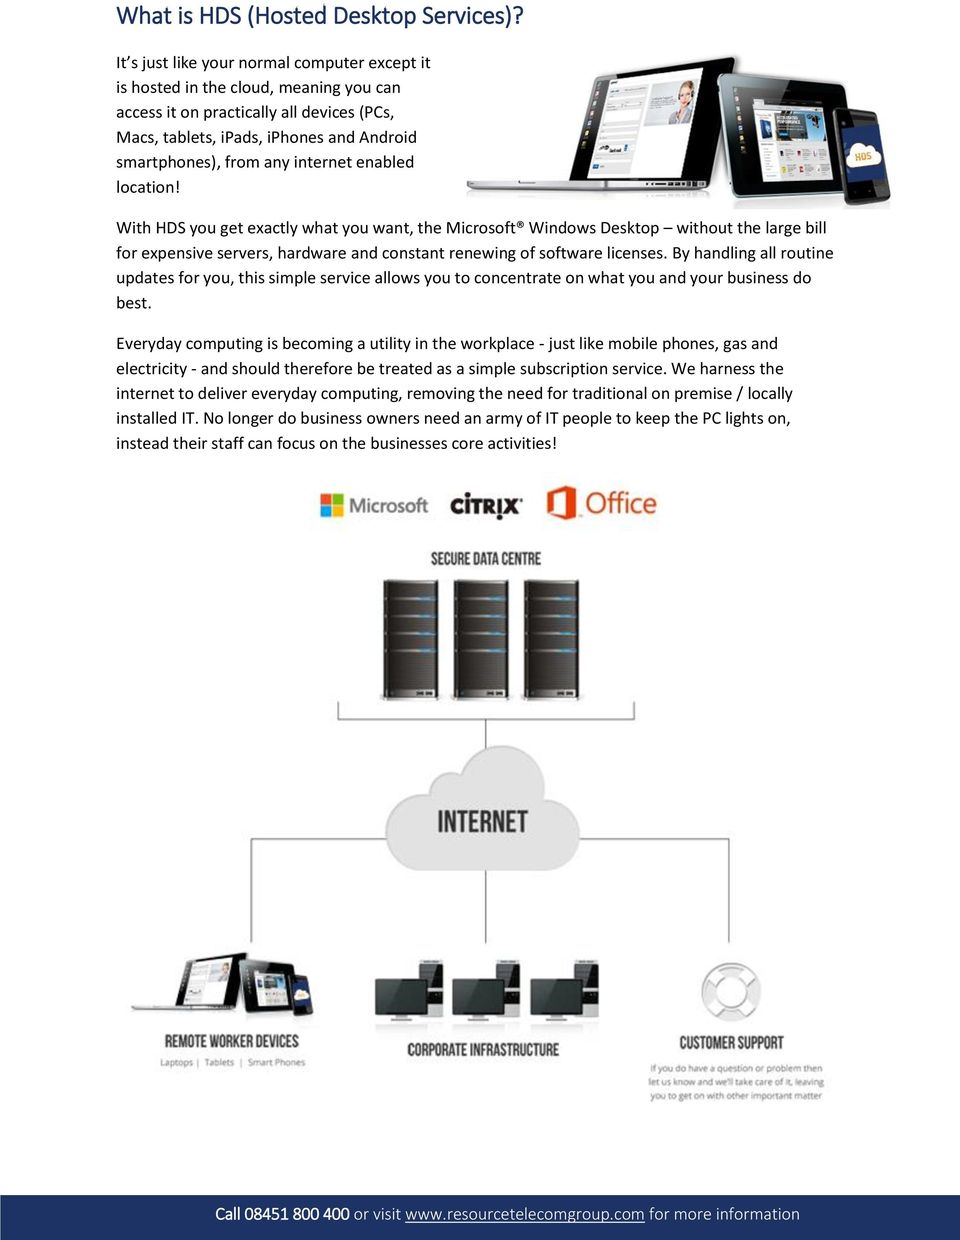 internet enabled location! With HDS you get exactly what you want, the Microsoft Windows Desktop without the large bill for expensive servers, hardware and constant renewing of software licenses.